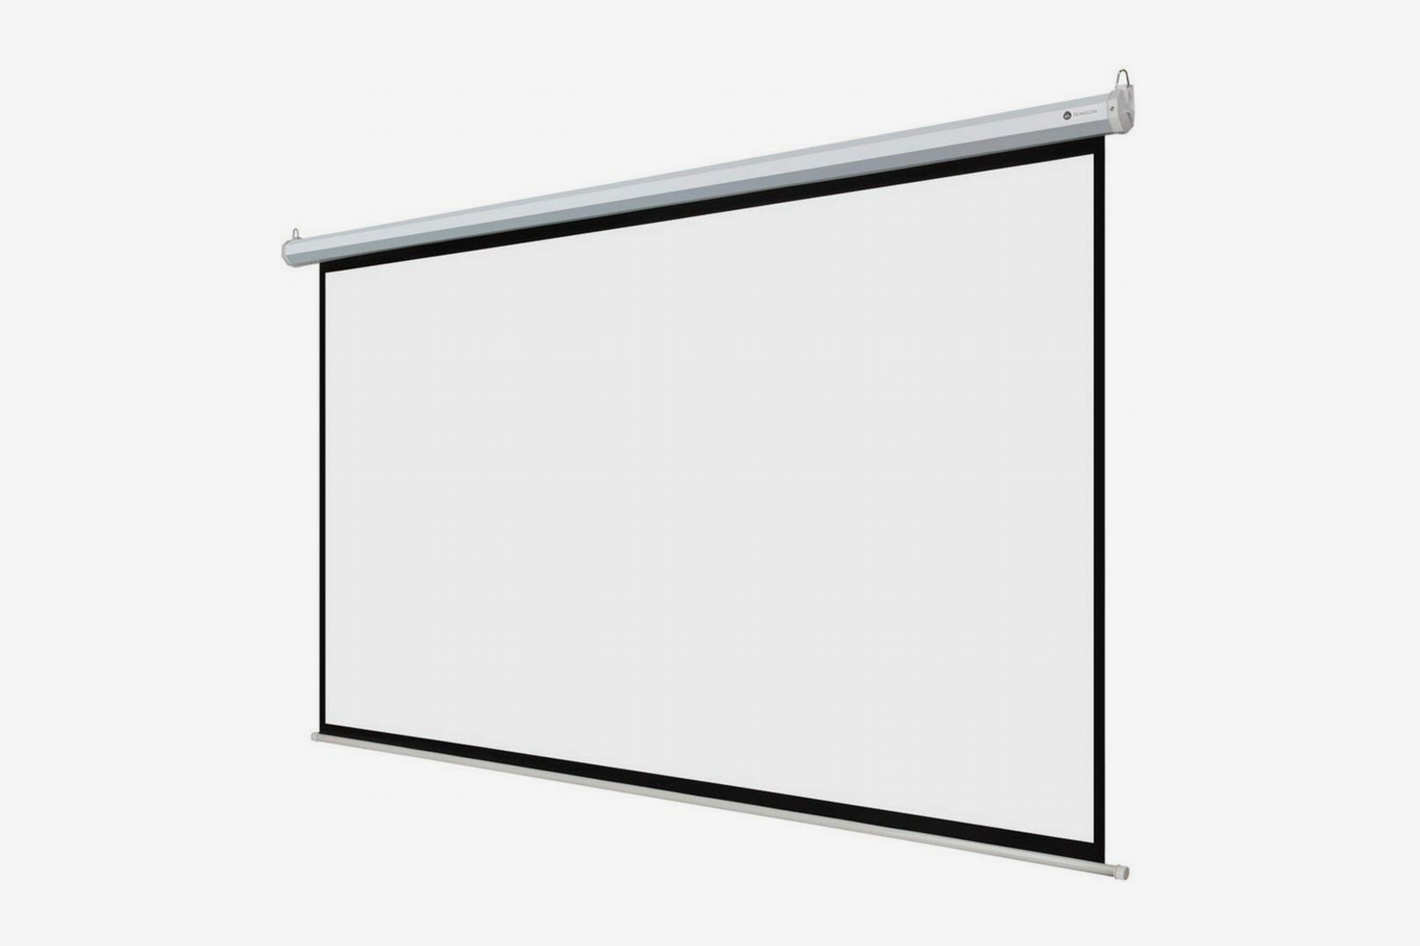 "Homegear 110"" HD Motorized 16:9 Projector Screen W/ Remote Control"